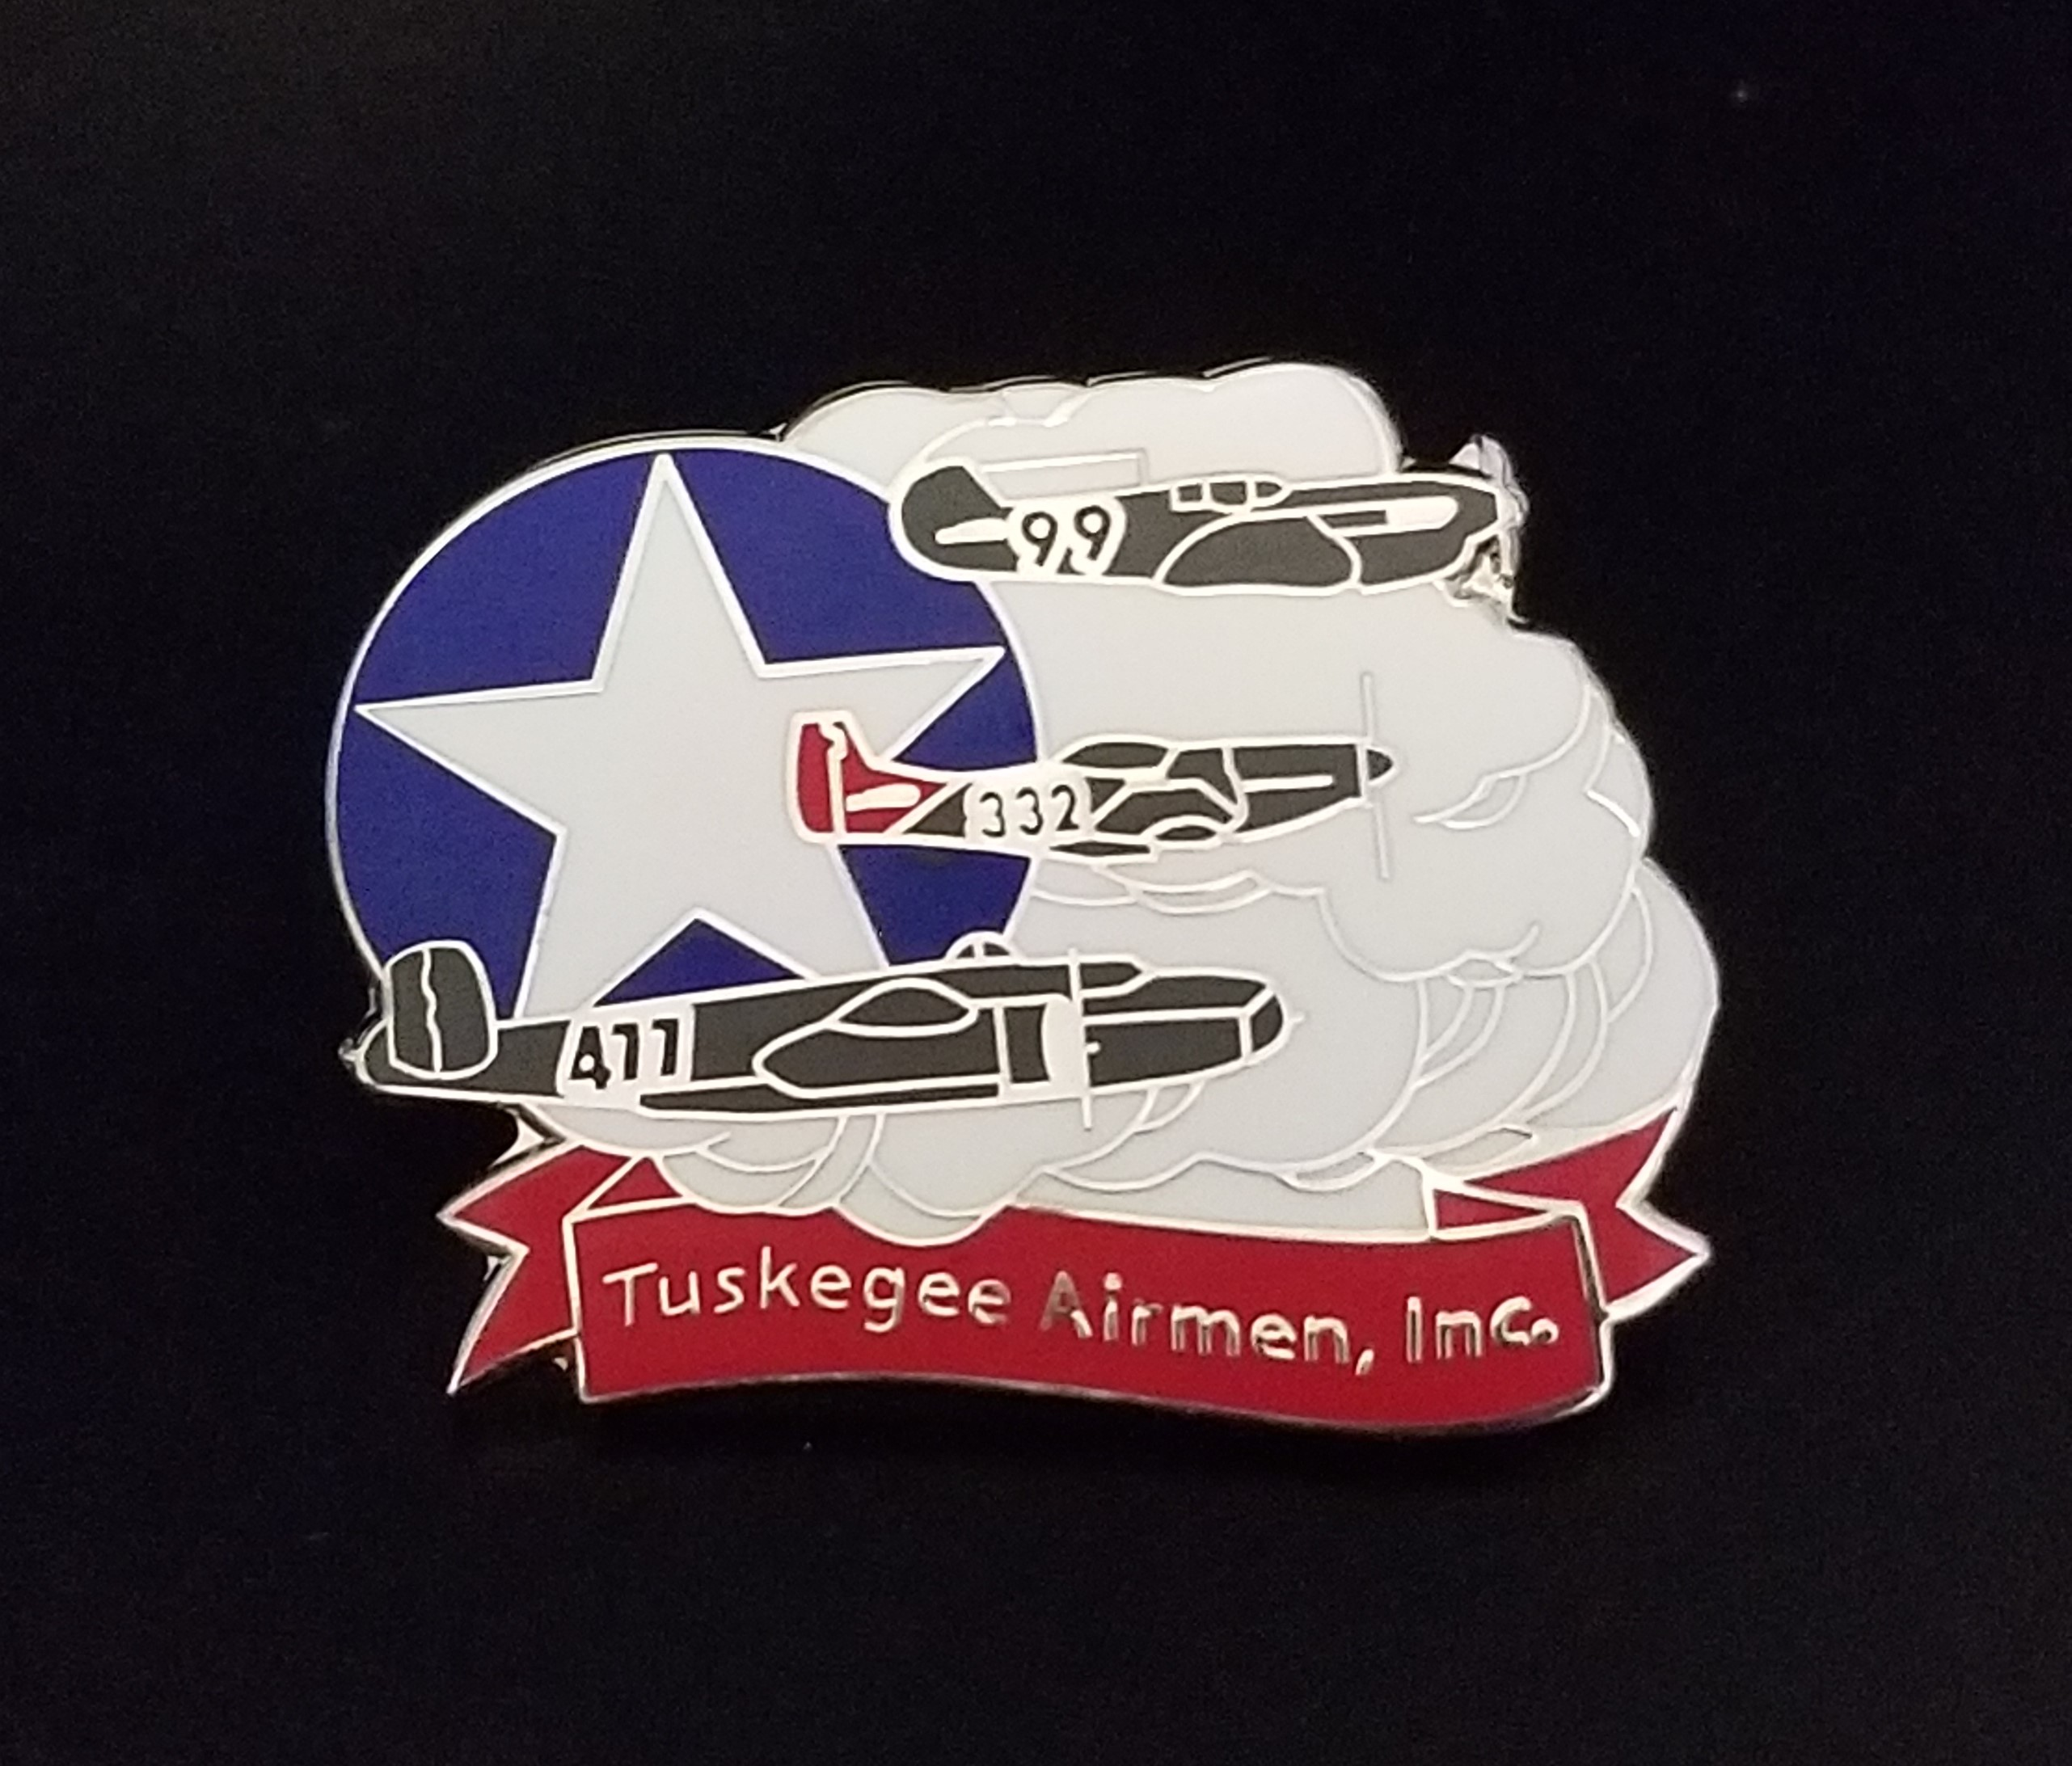 Tuskegee Airmen 2nd Annual Charity Golf Tournament - Default Image of Tuskegee Airmen lapel pin